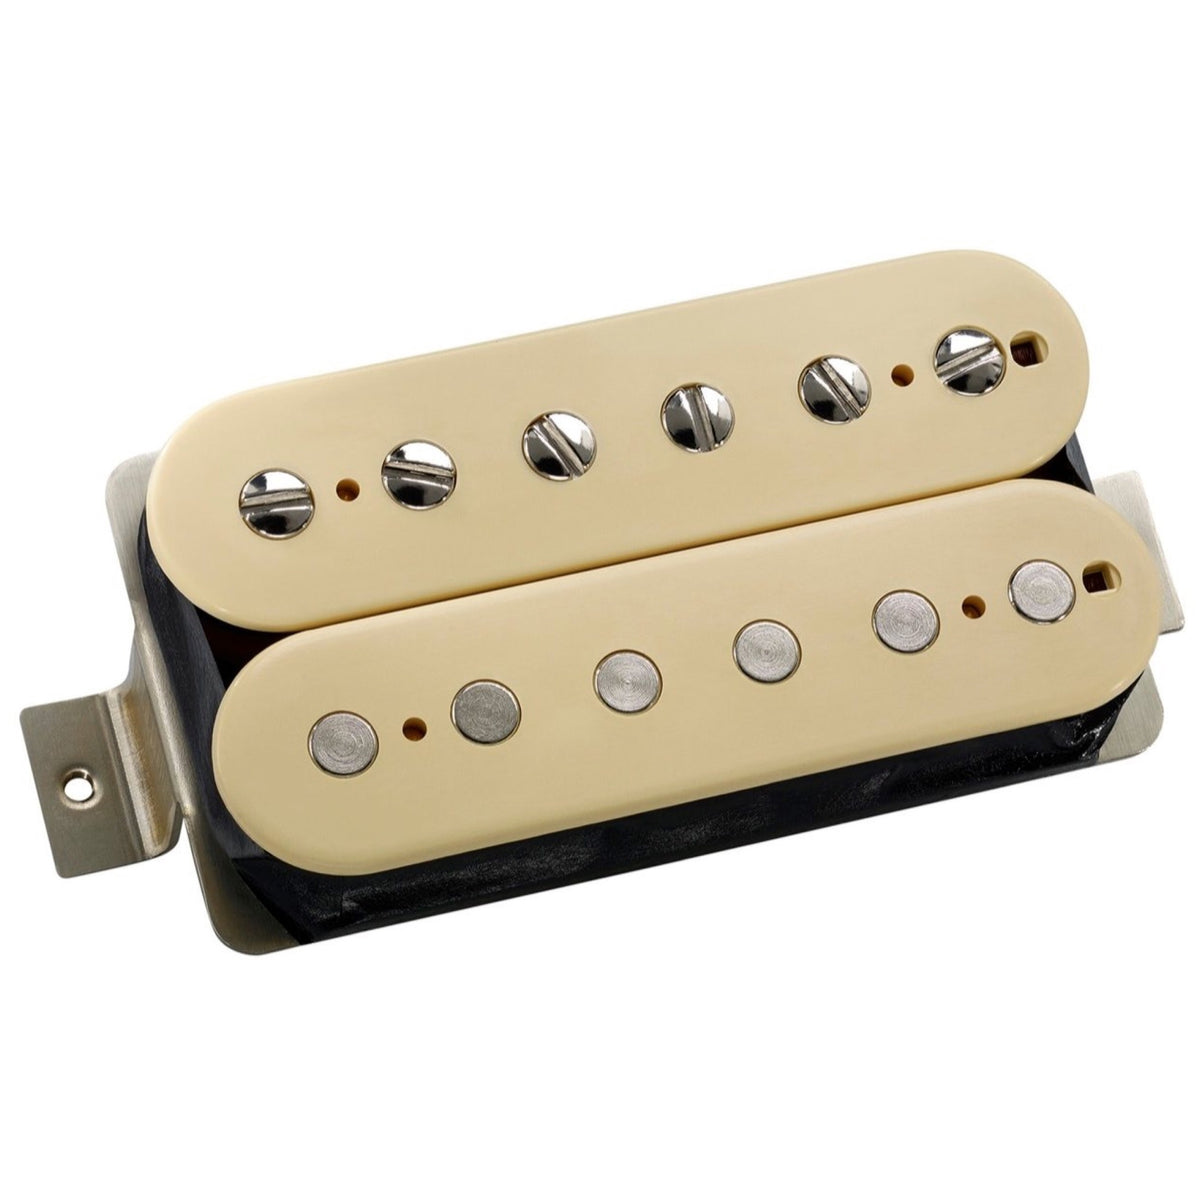 DiMarzio DP275CR PAF 59 Electric Guitar Pickup, Cream, Bridge